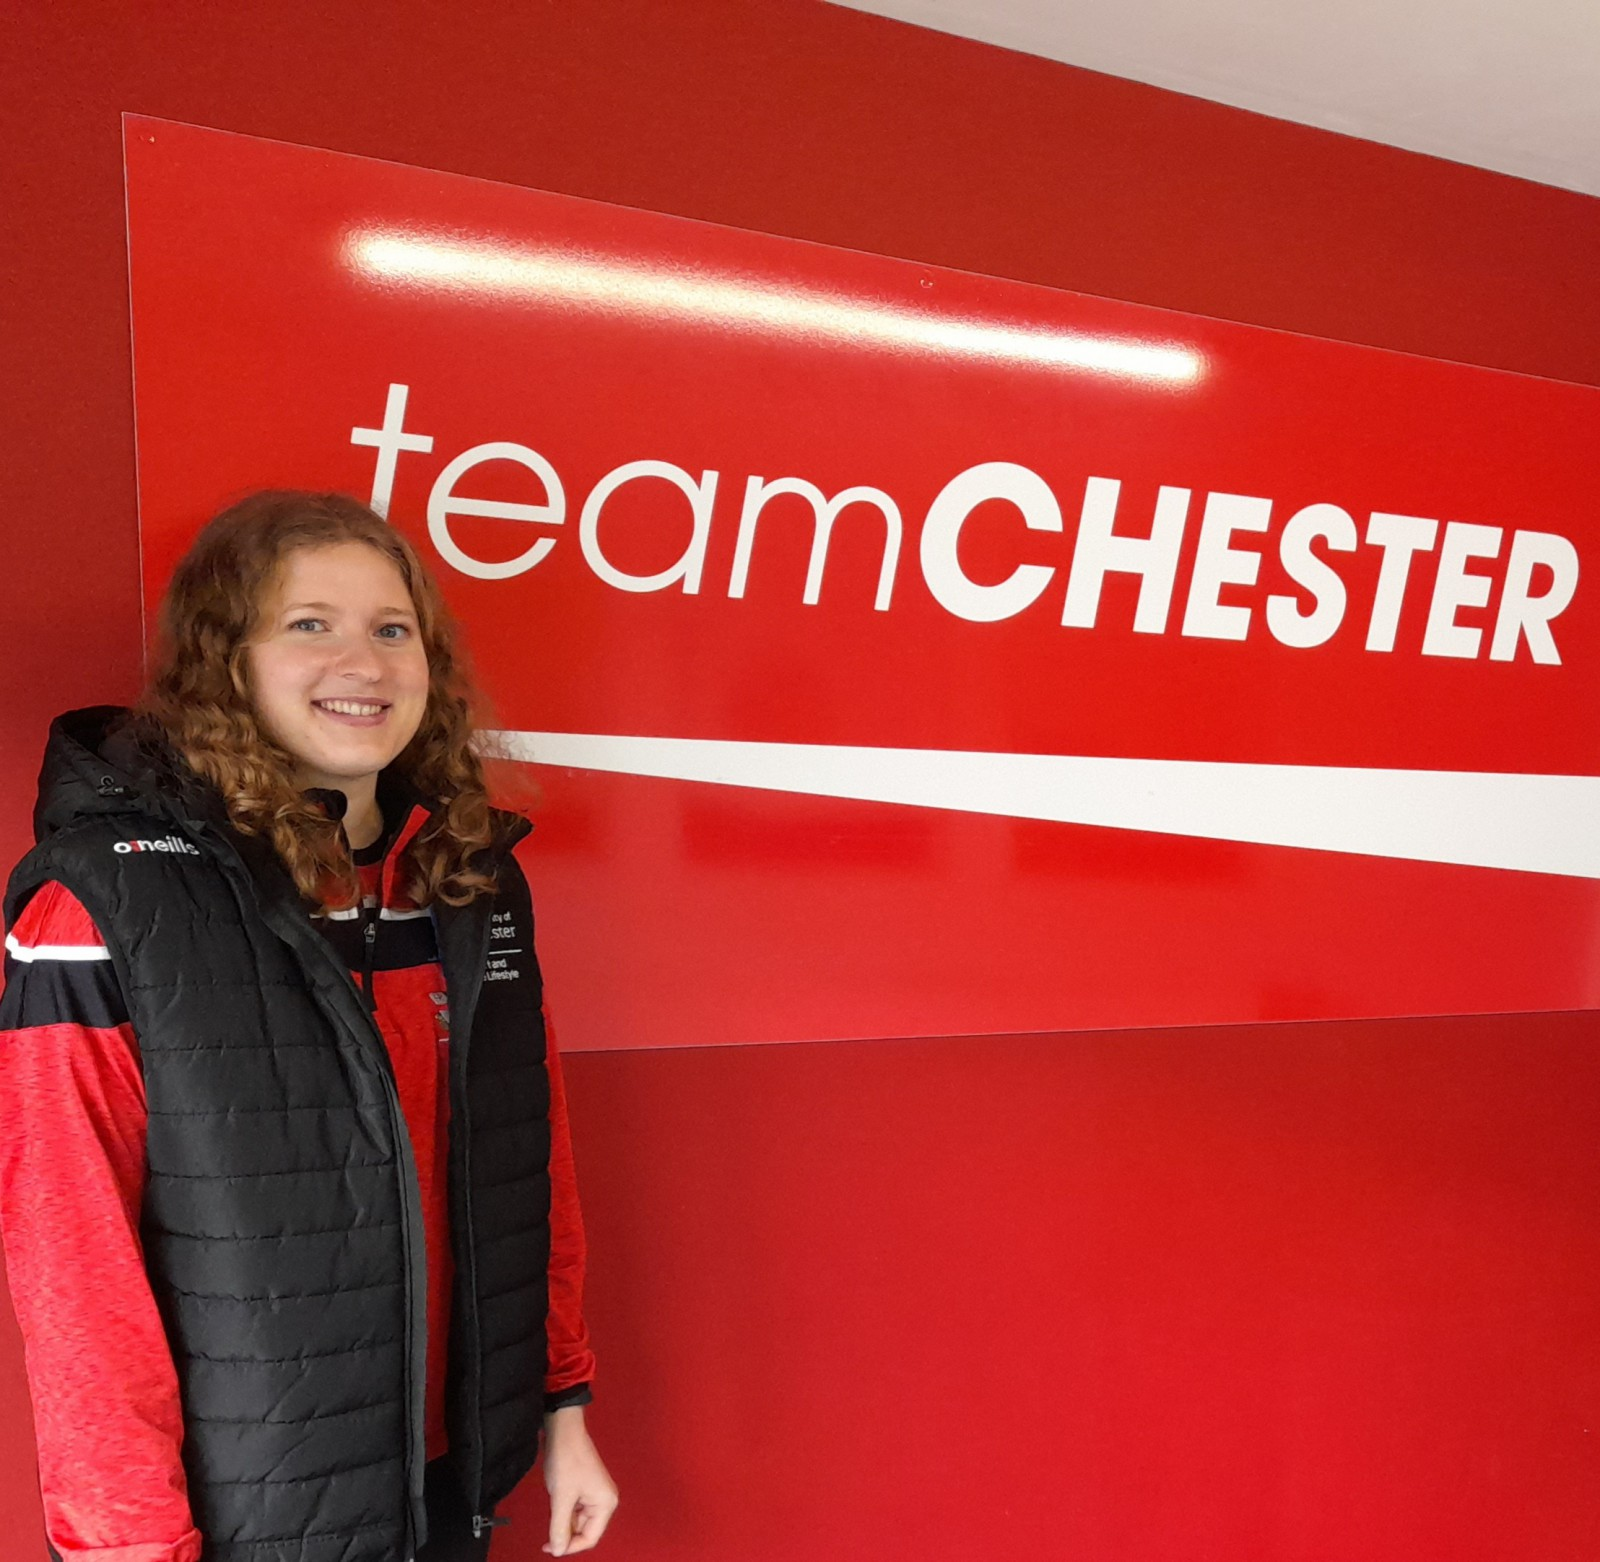 Ali Burkett from the University of Chester's Sport and Active Lifestyle Department.